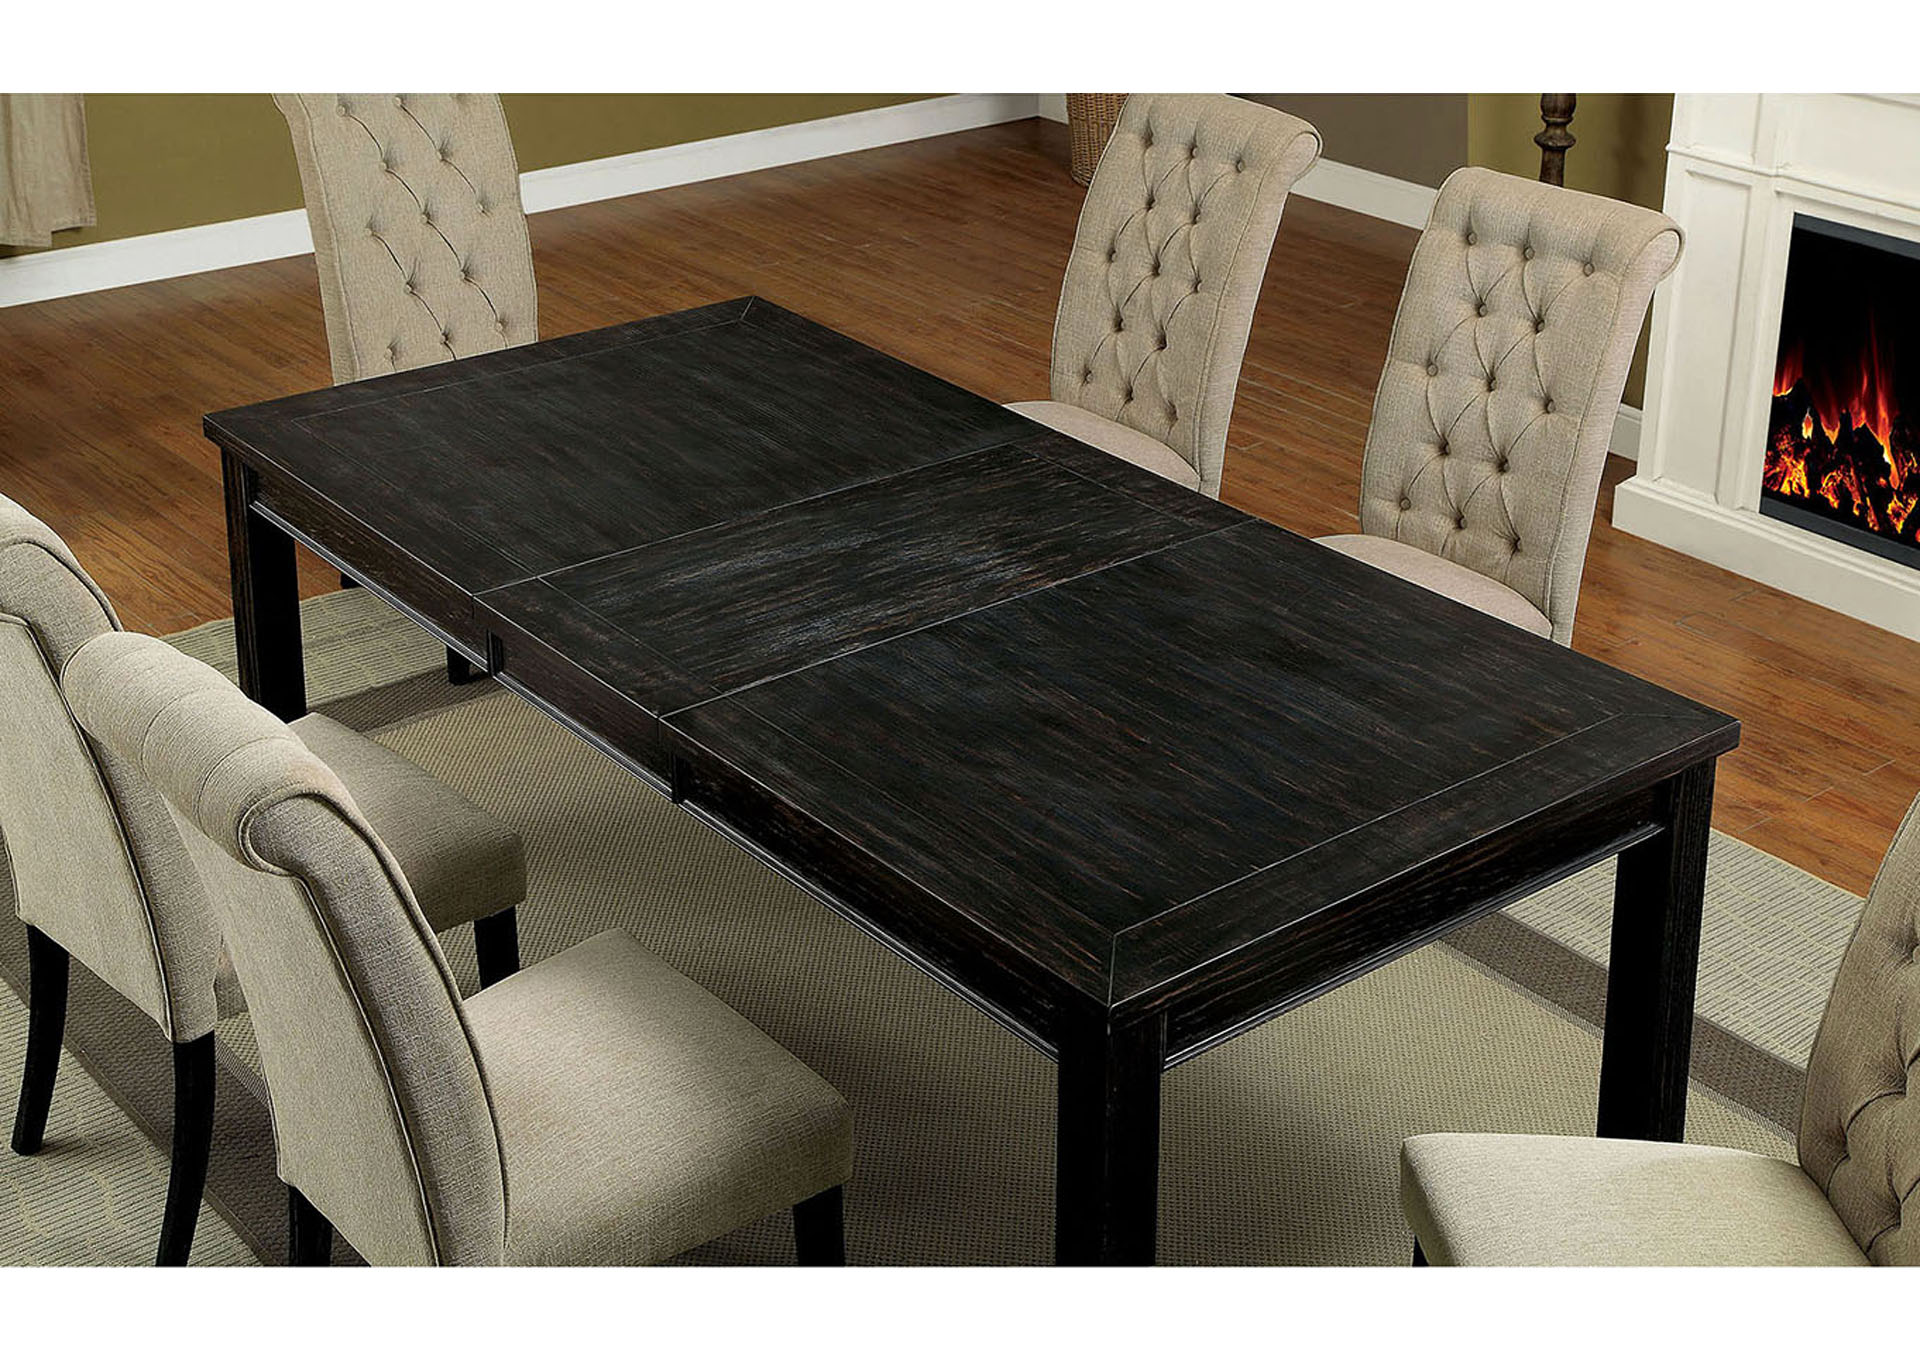 Sania I Antique Black Dining Table w/18